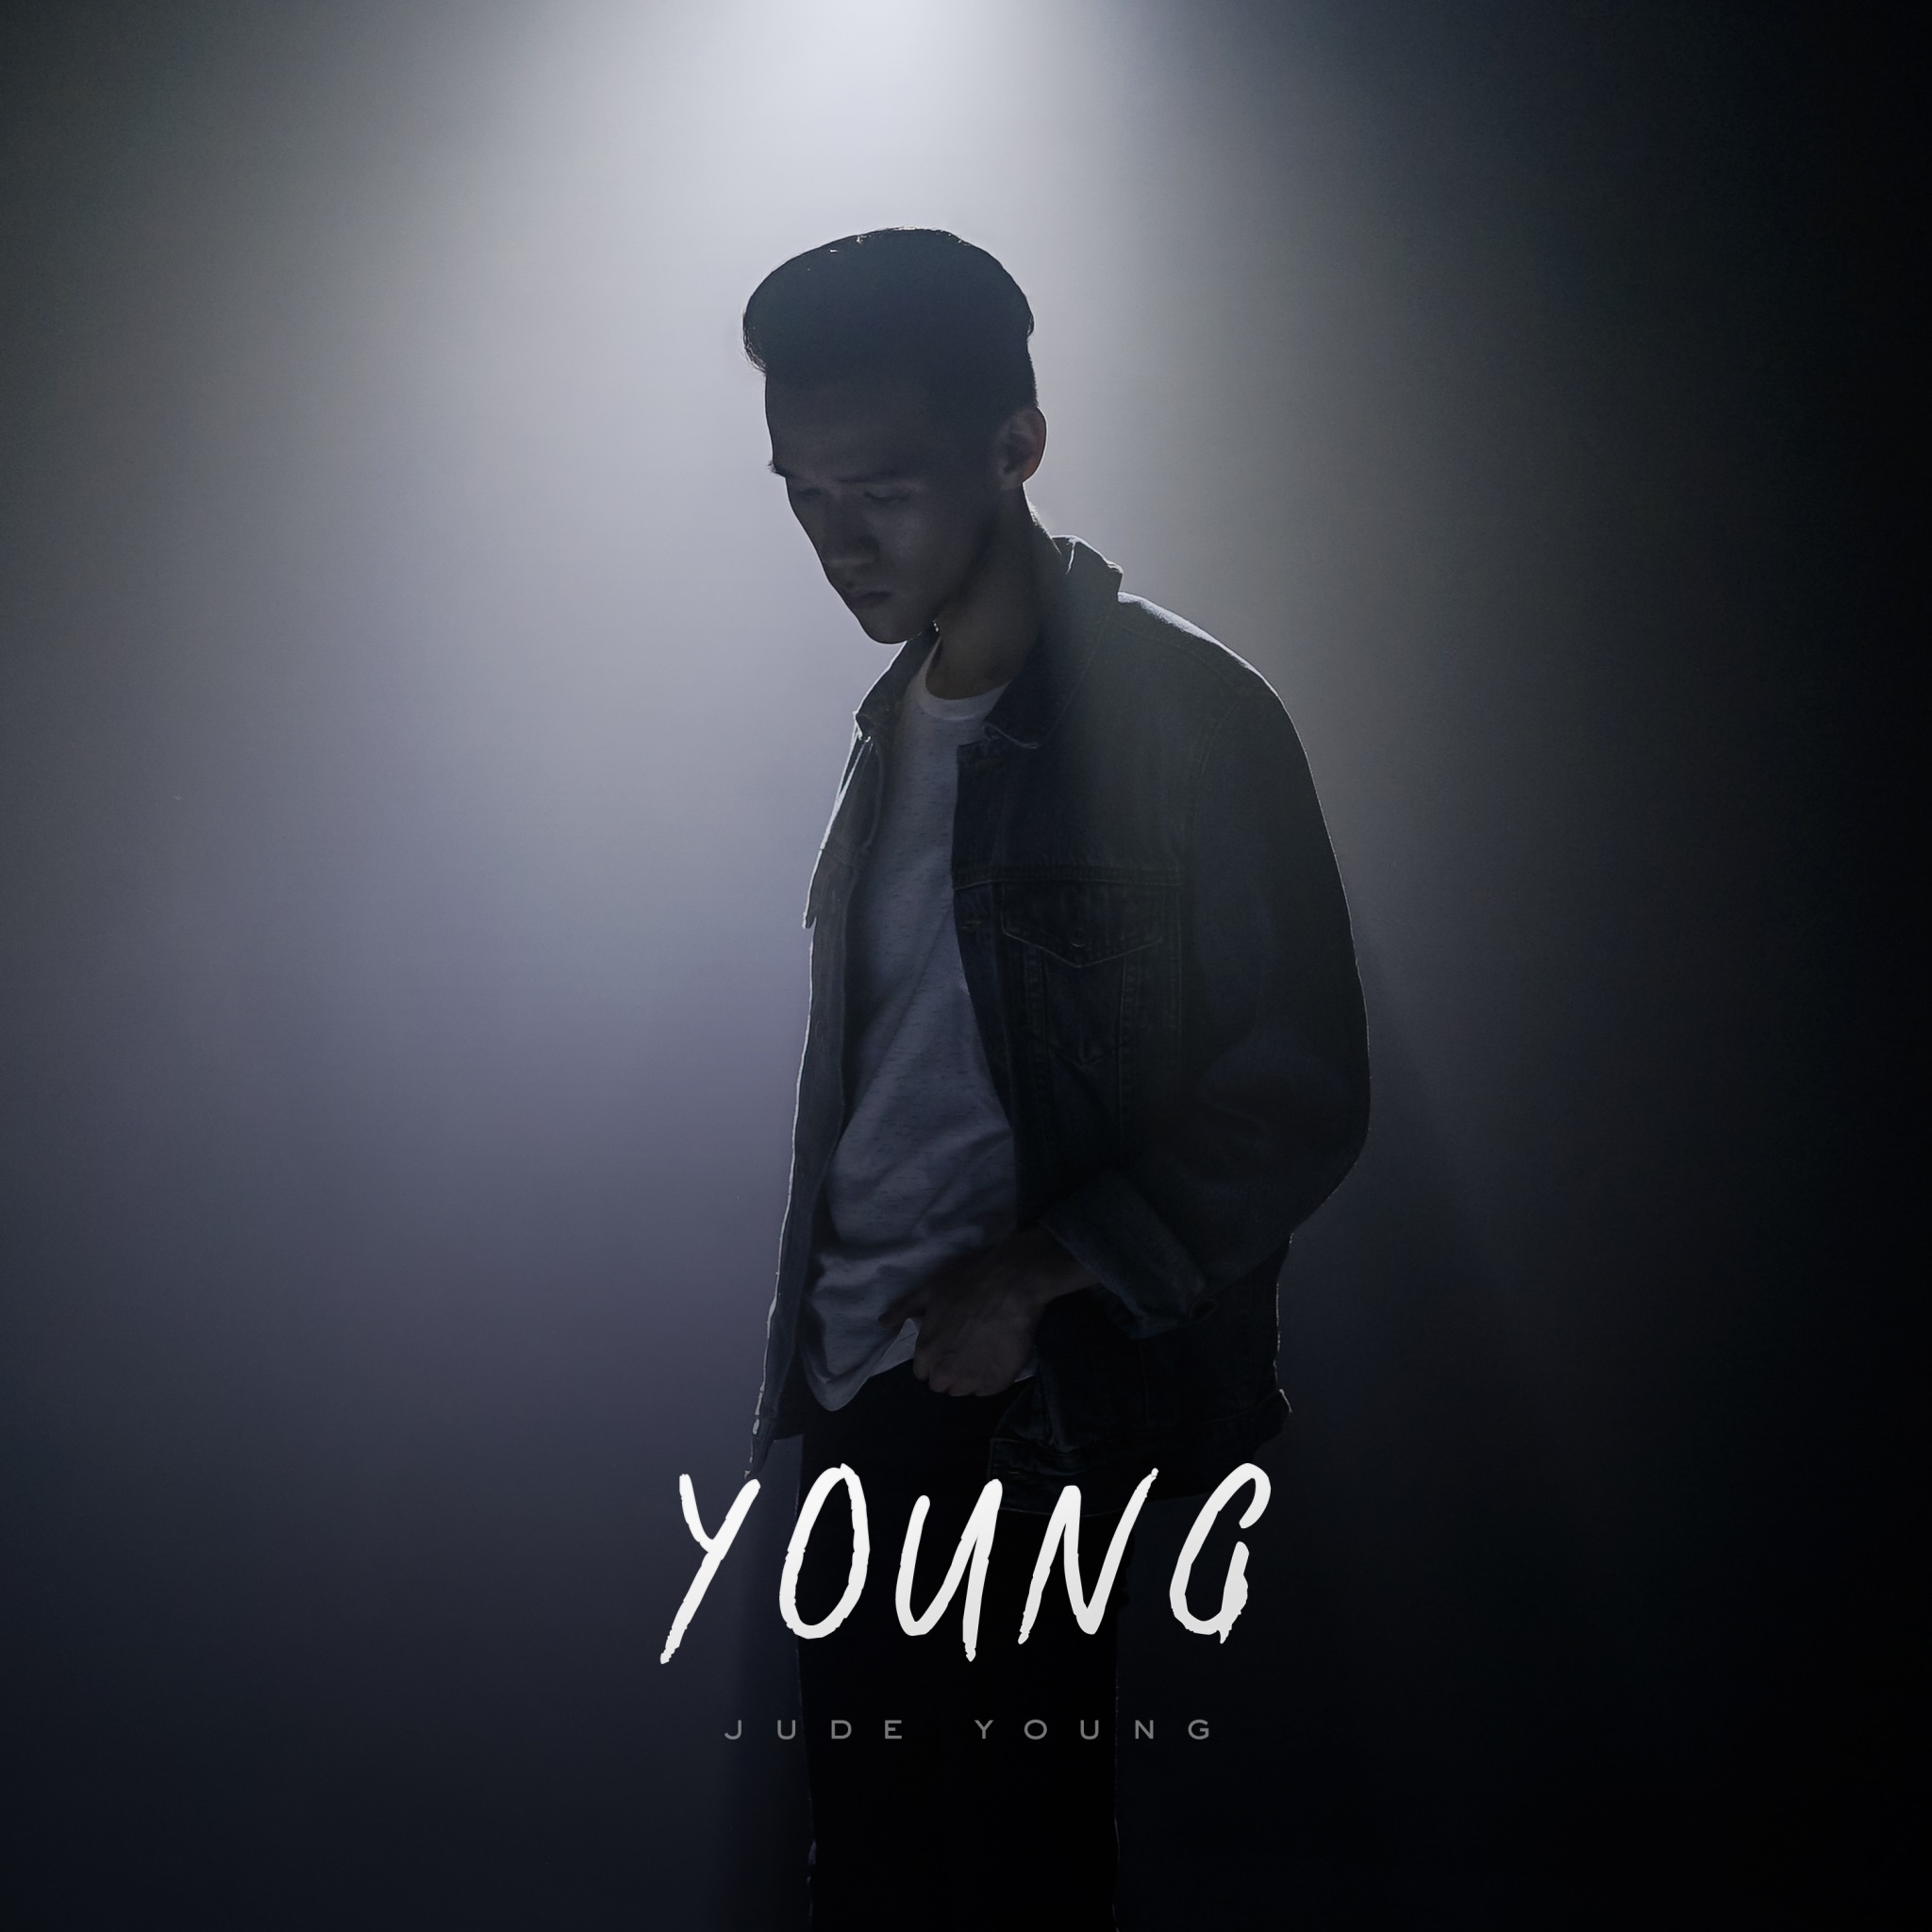 01 Young (Cover Art)